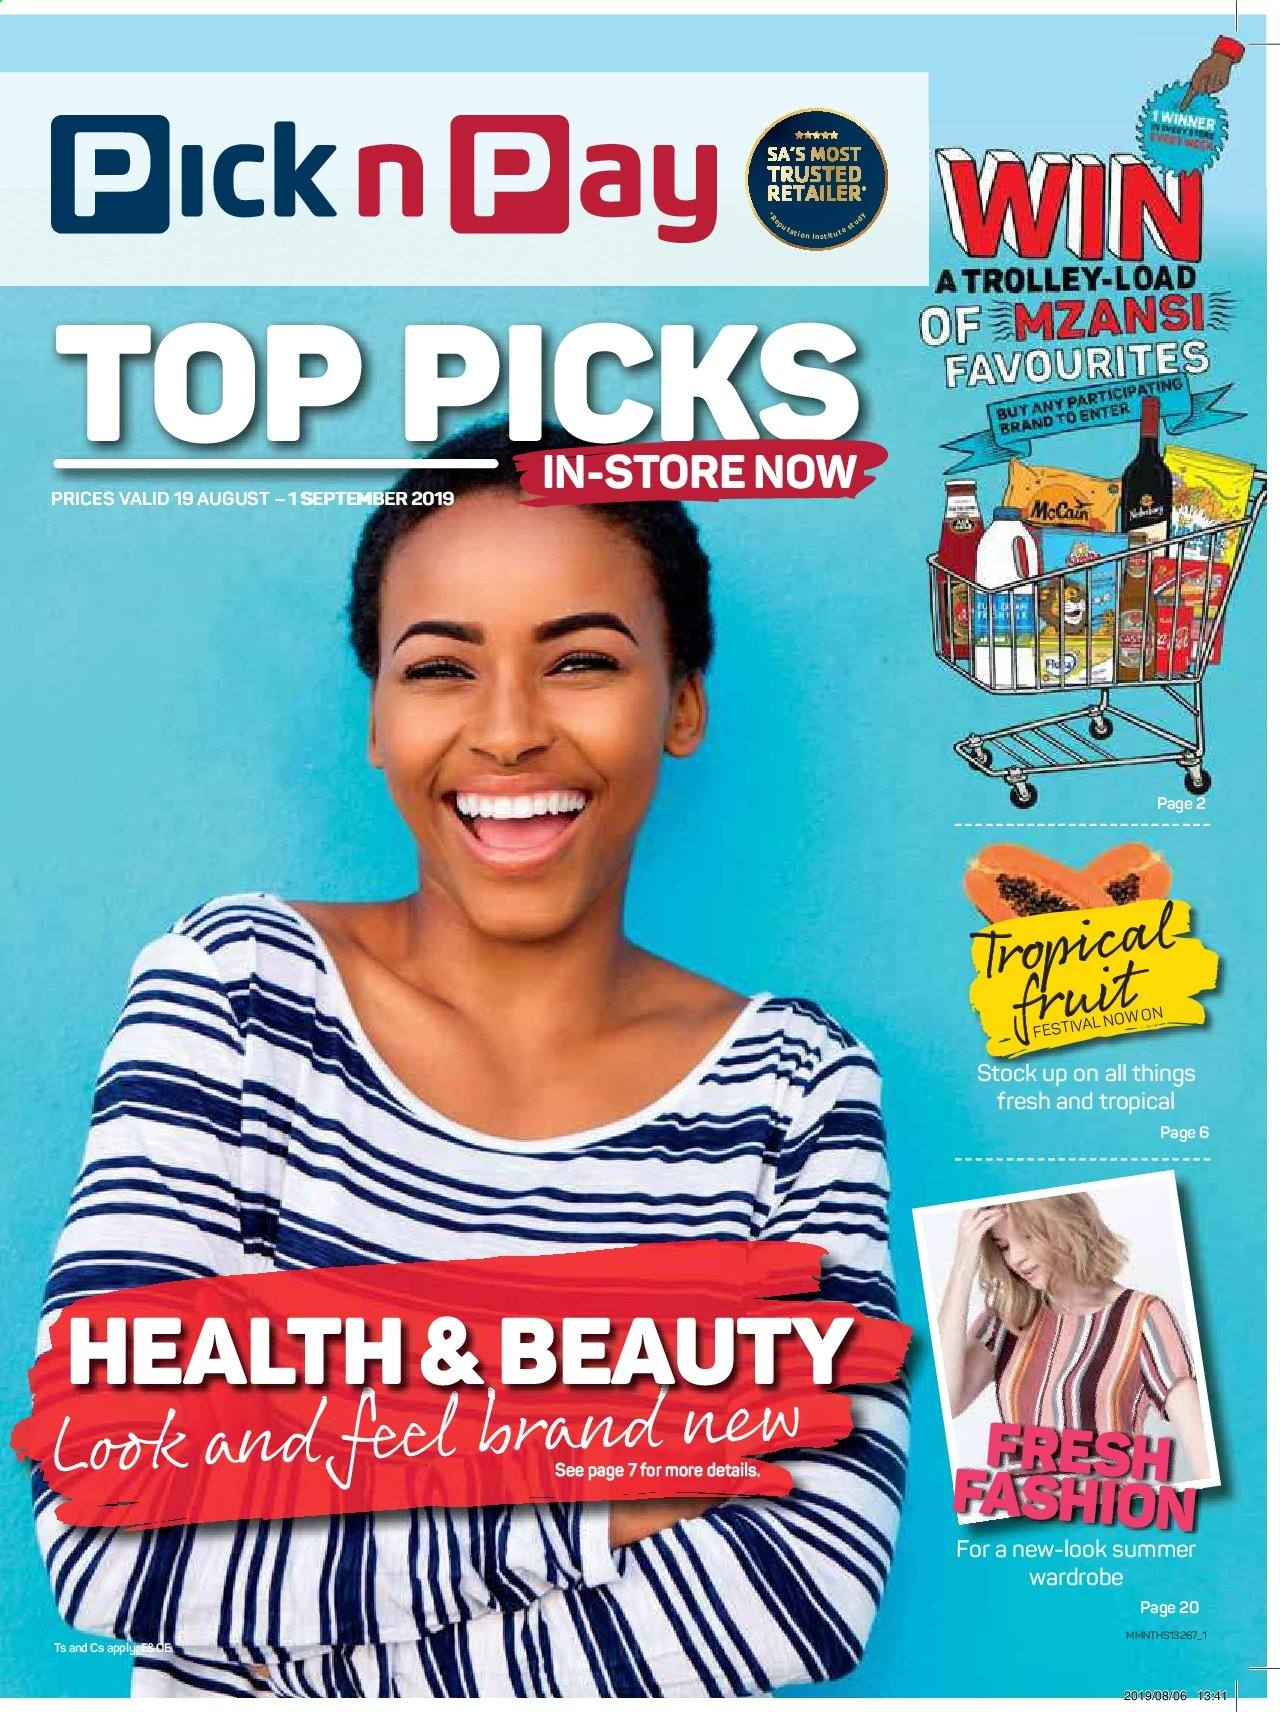 Pick n Pay catalogue  - 08.19.2019 - 09.01.2019. Page 1.